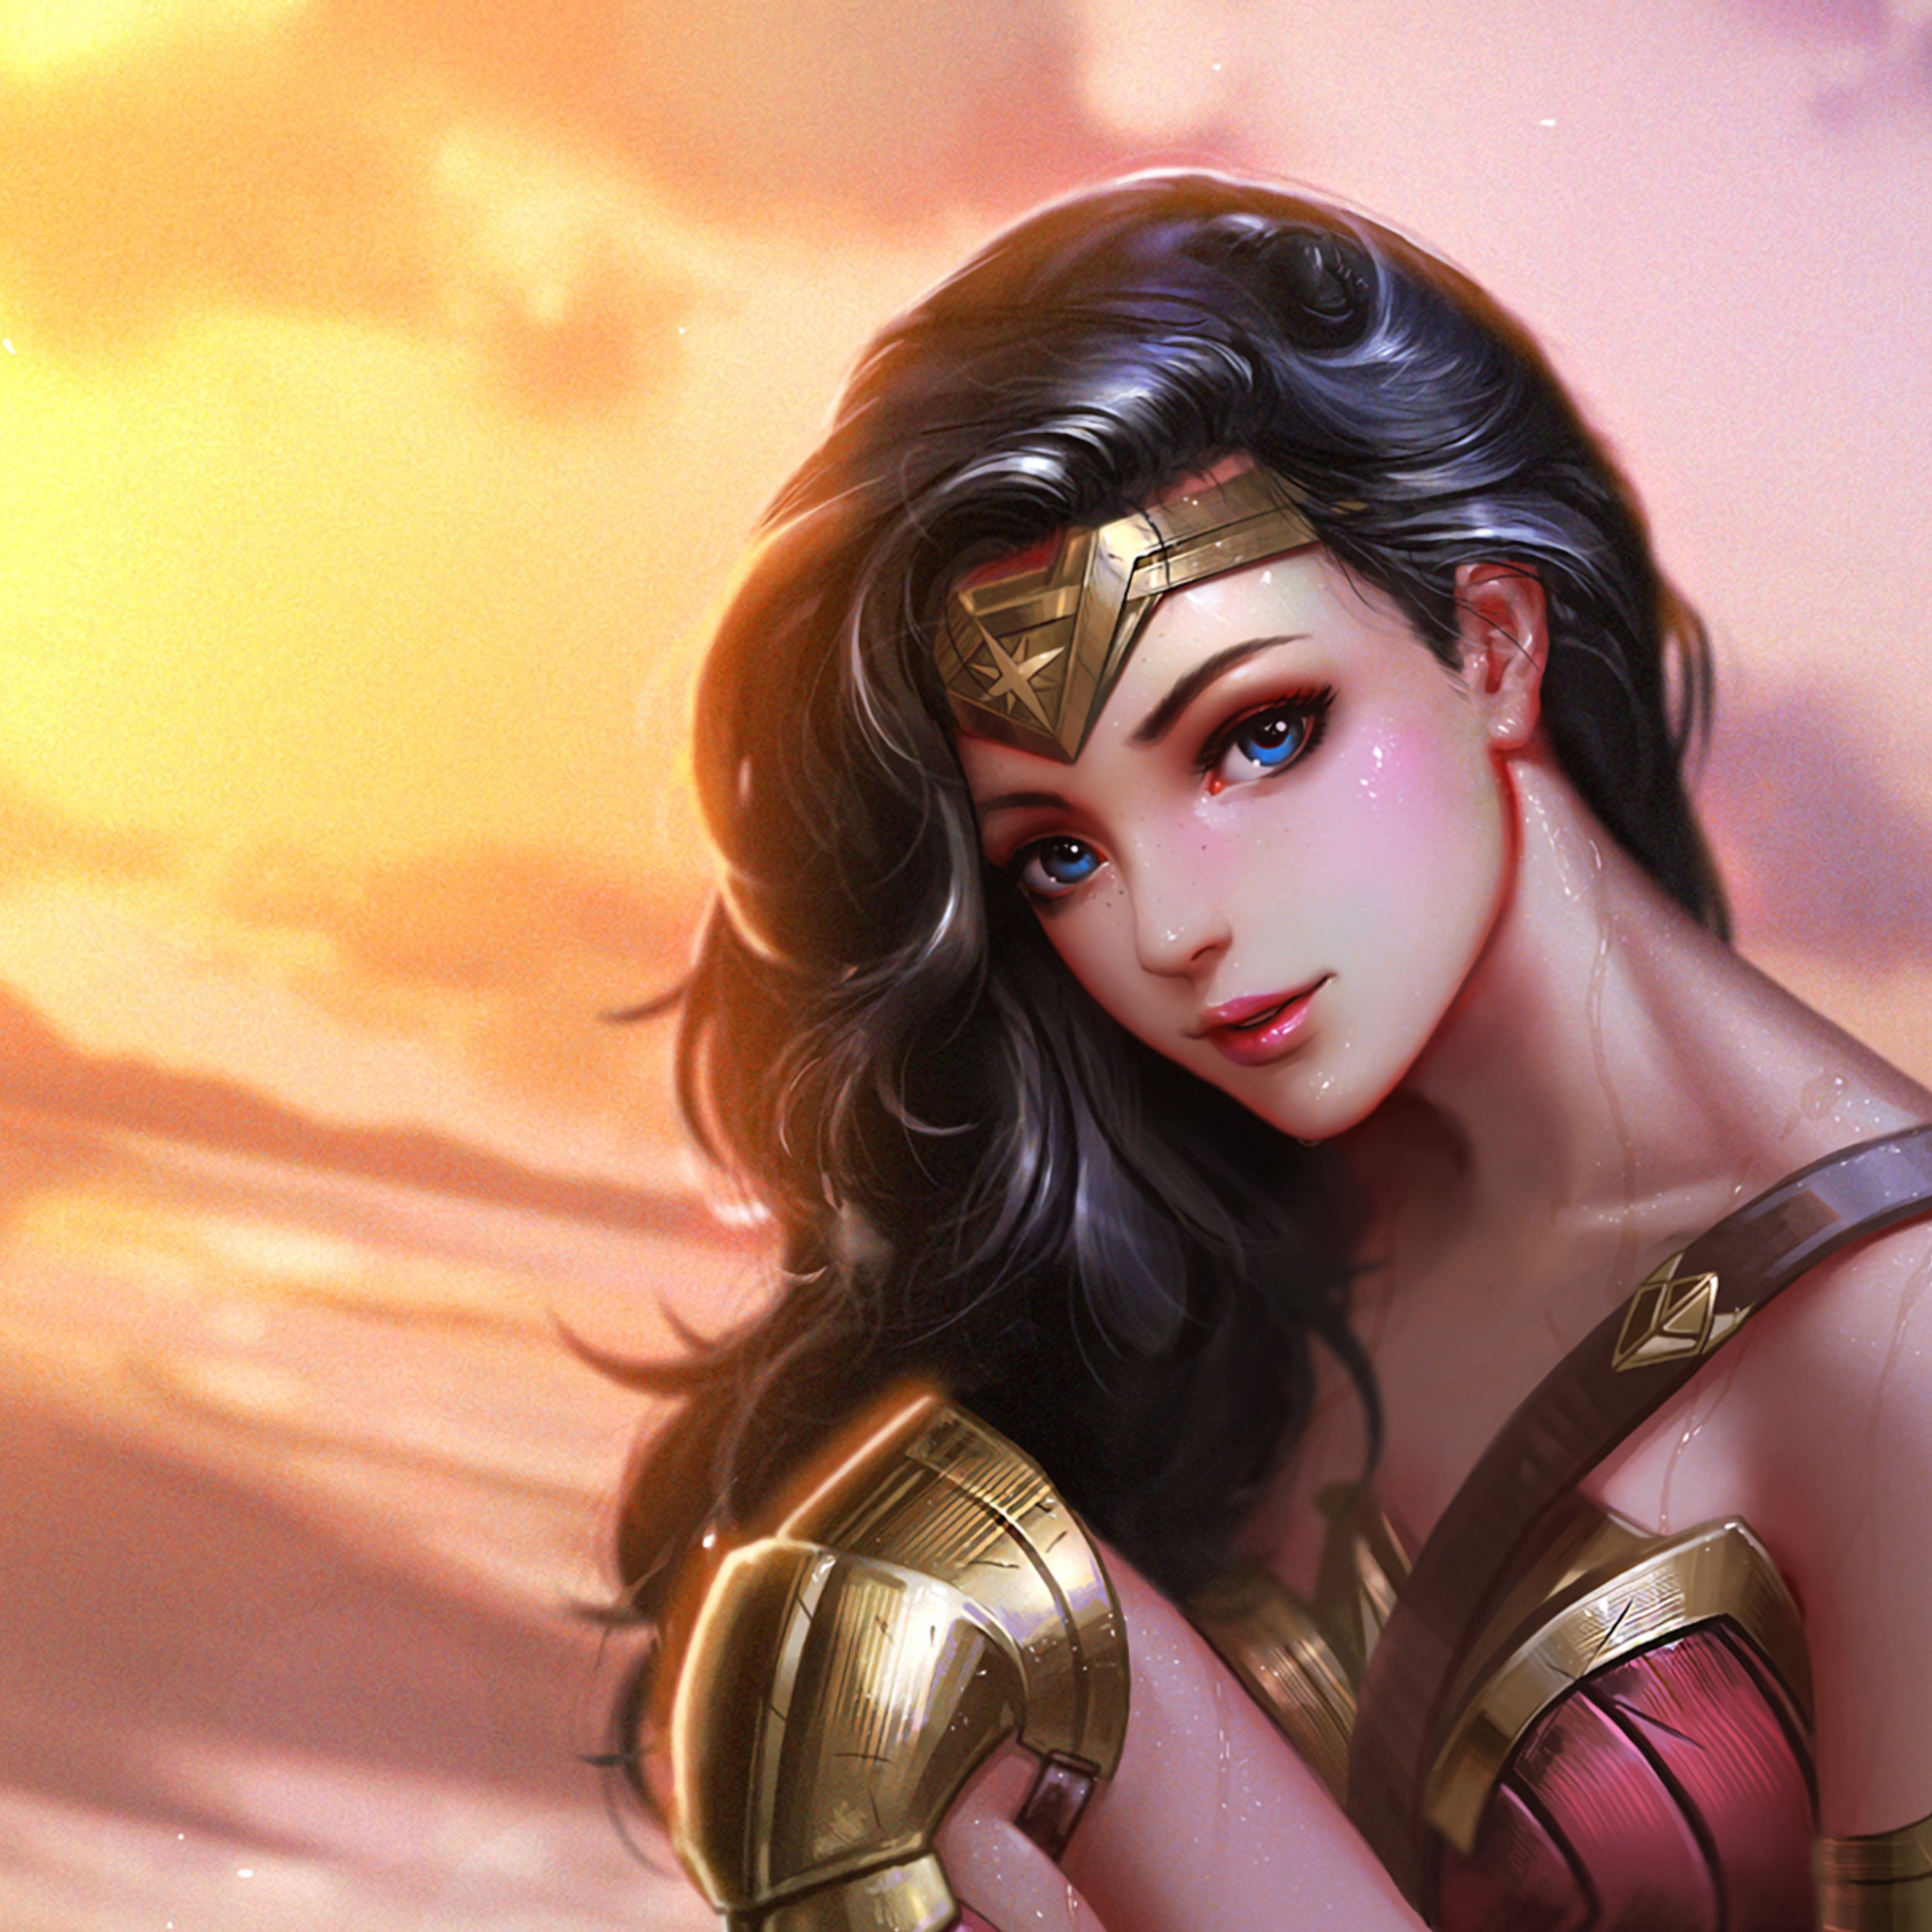 2048x2048 Wonder Woman Fan Art Ipad Air HD 4k Wallpapers